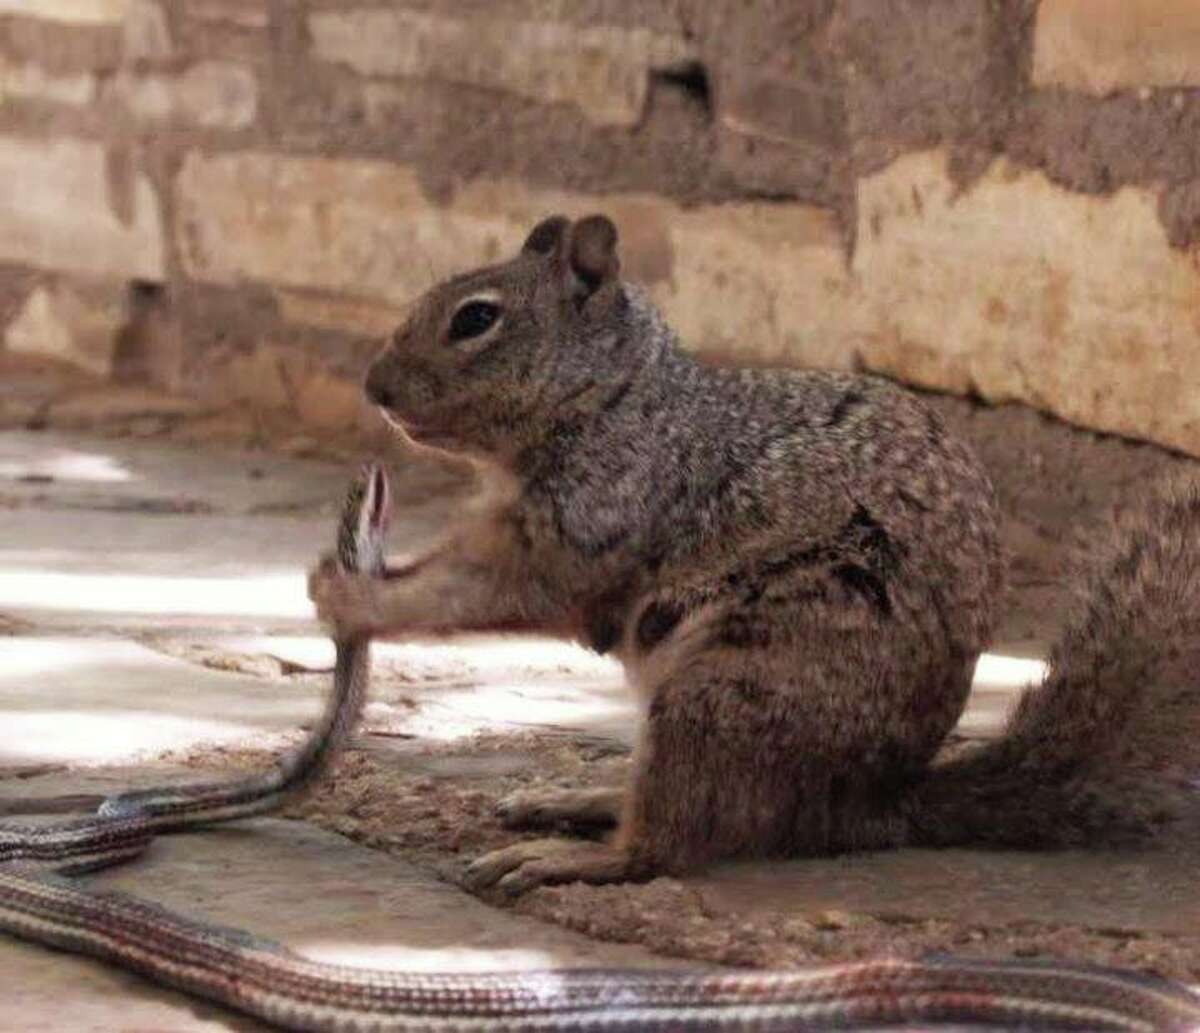 """This photo, taken by the Guadalupe Mountains National Park, shows a squirrel holding a squirrel just before devouring it. According to a Facebook post, the squirrel ate most of the snake, """"bones and all."""""""